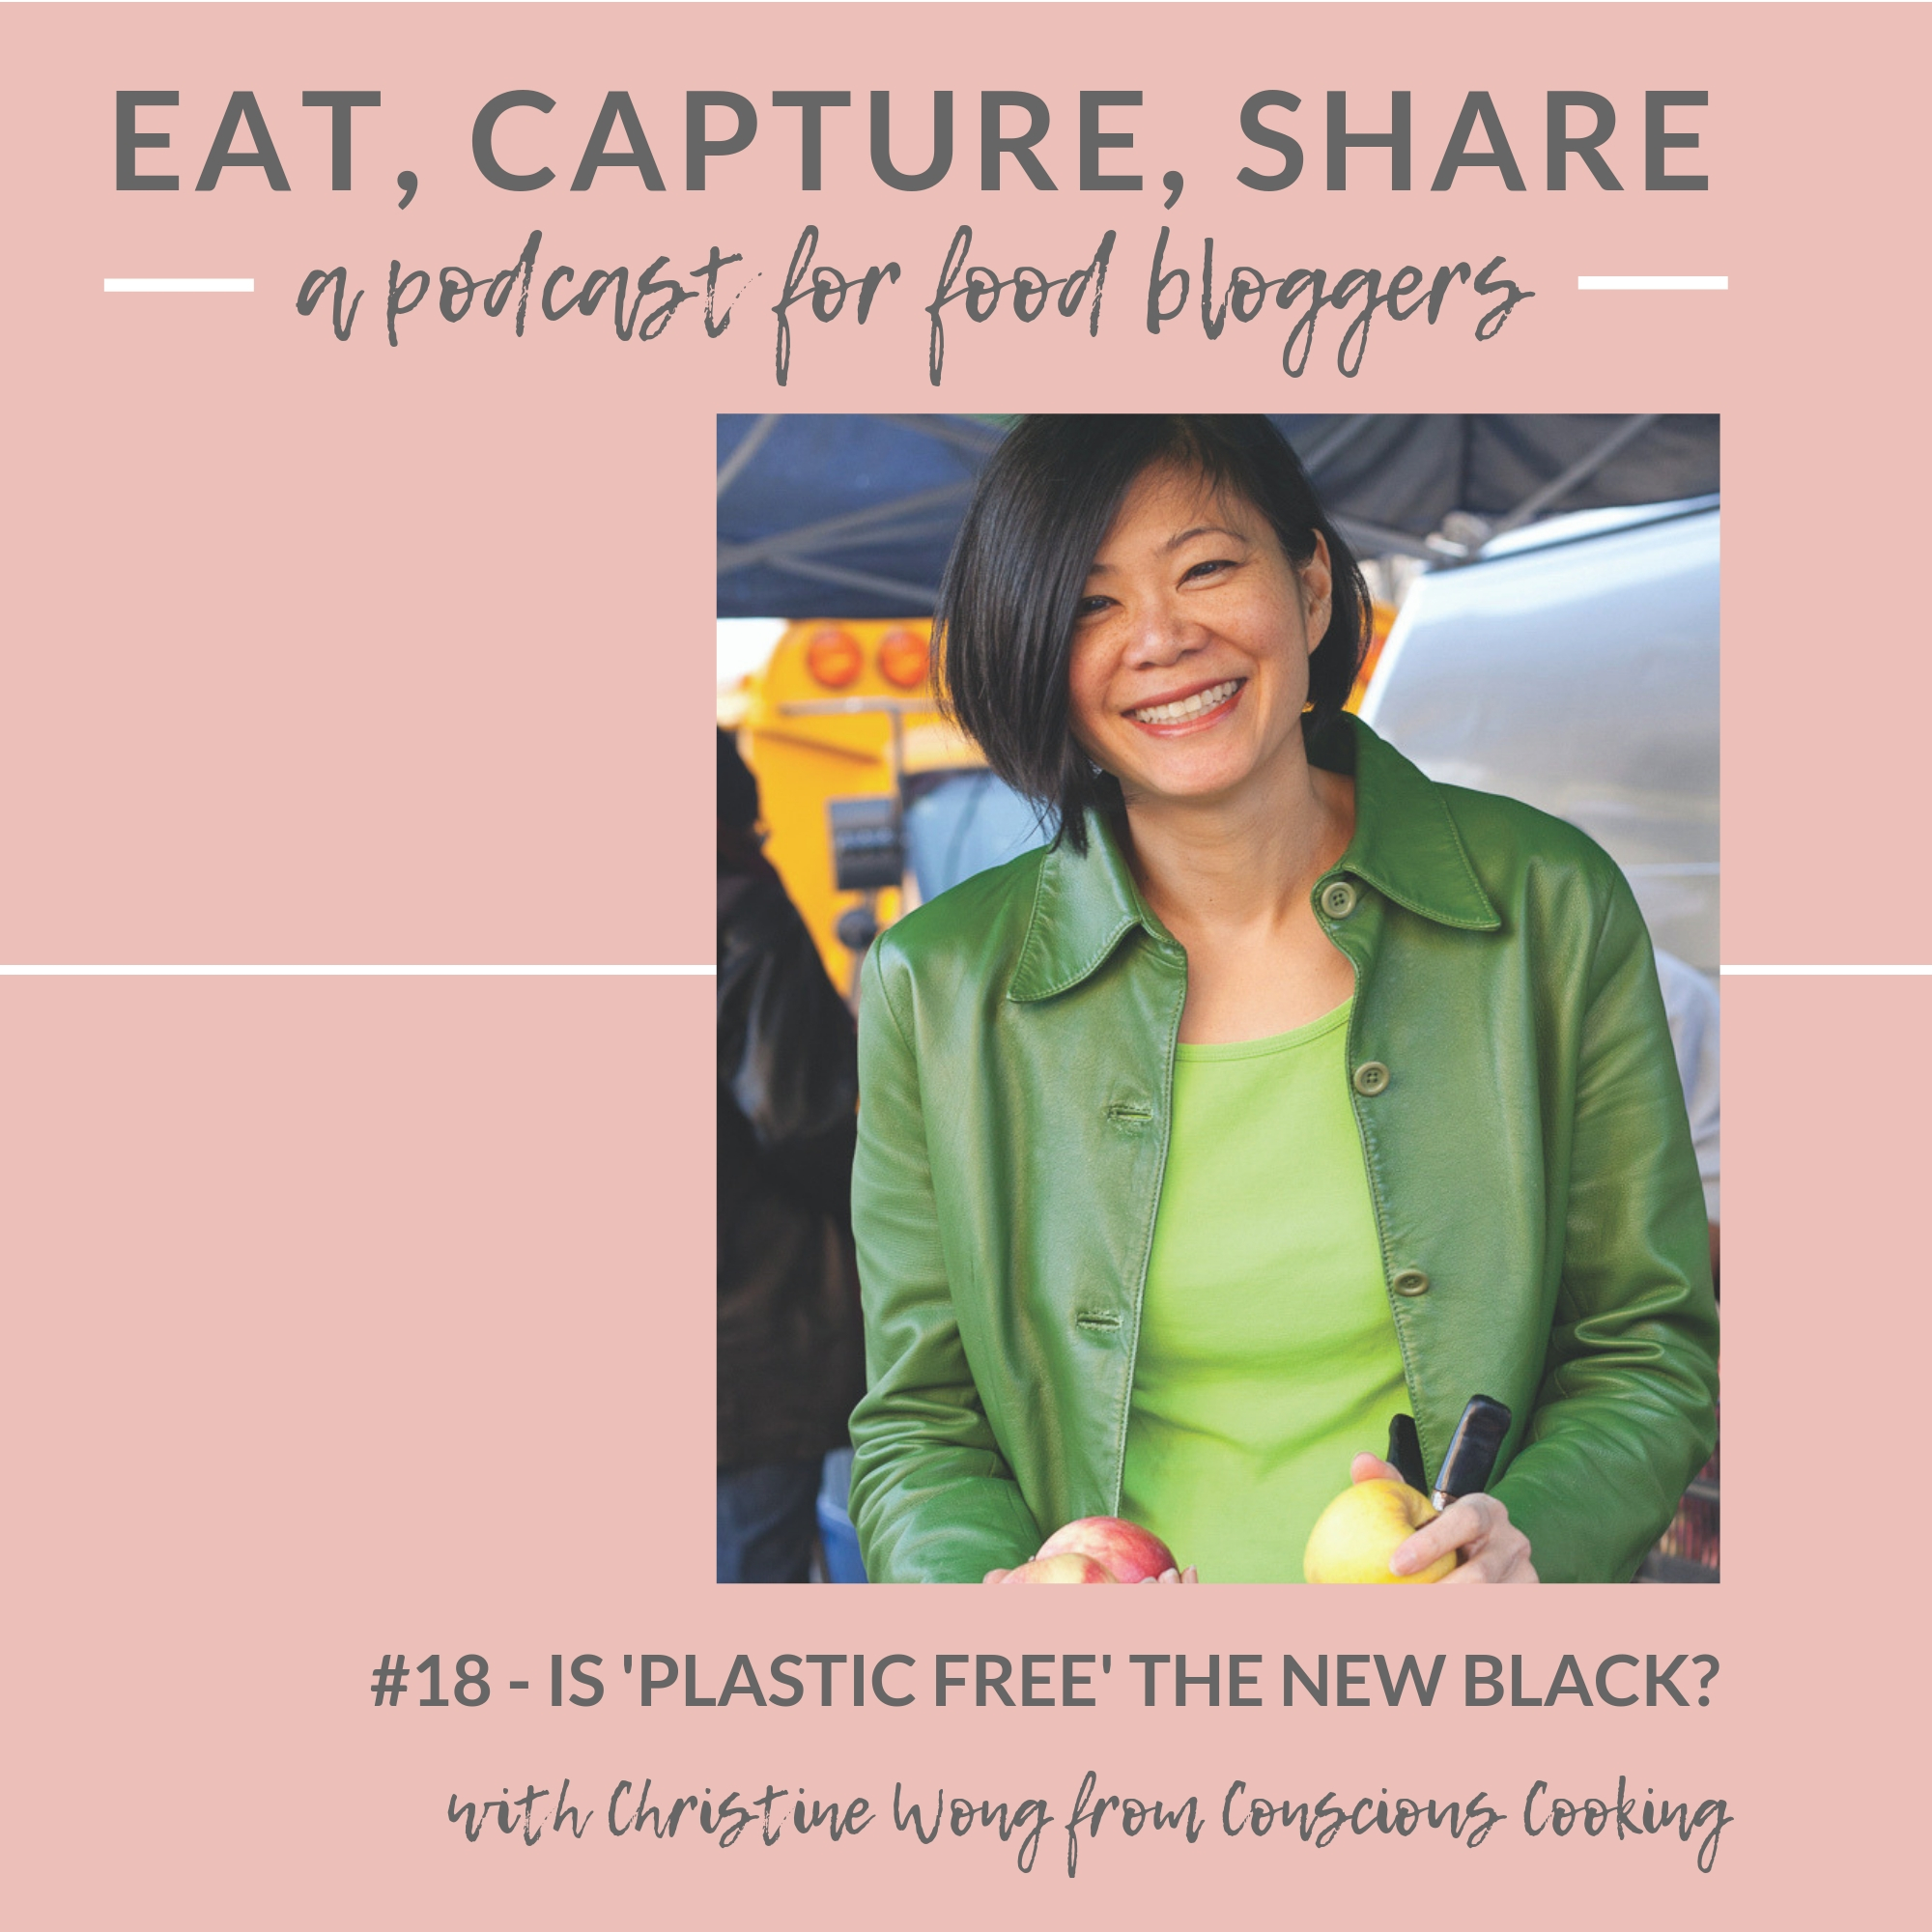 The growing plastic-free trend on instagram - Eat, Capture, Share Podcast